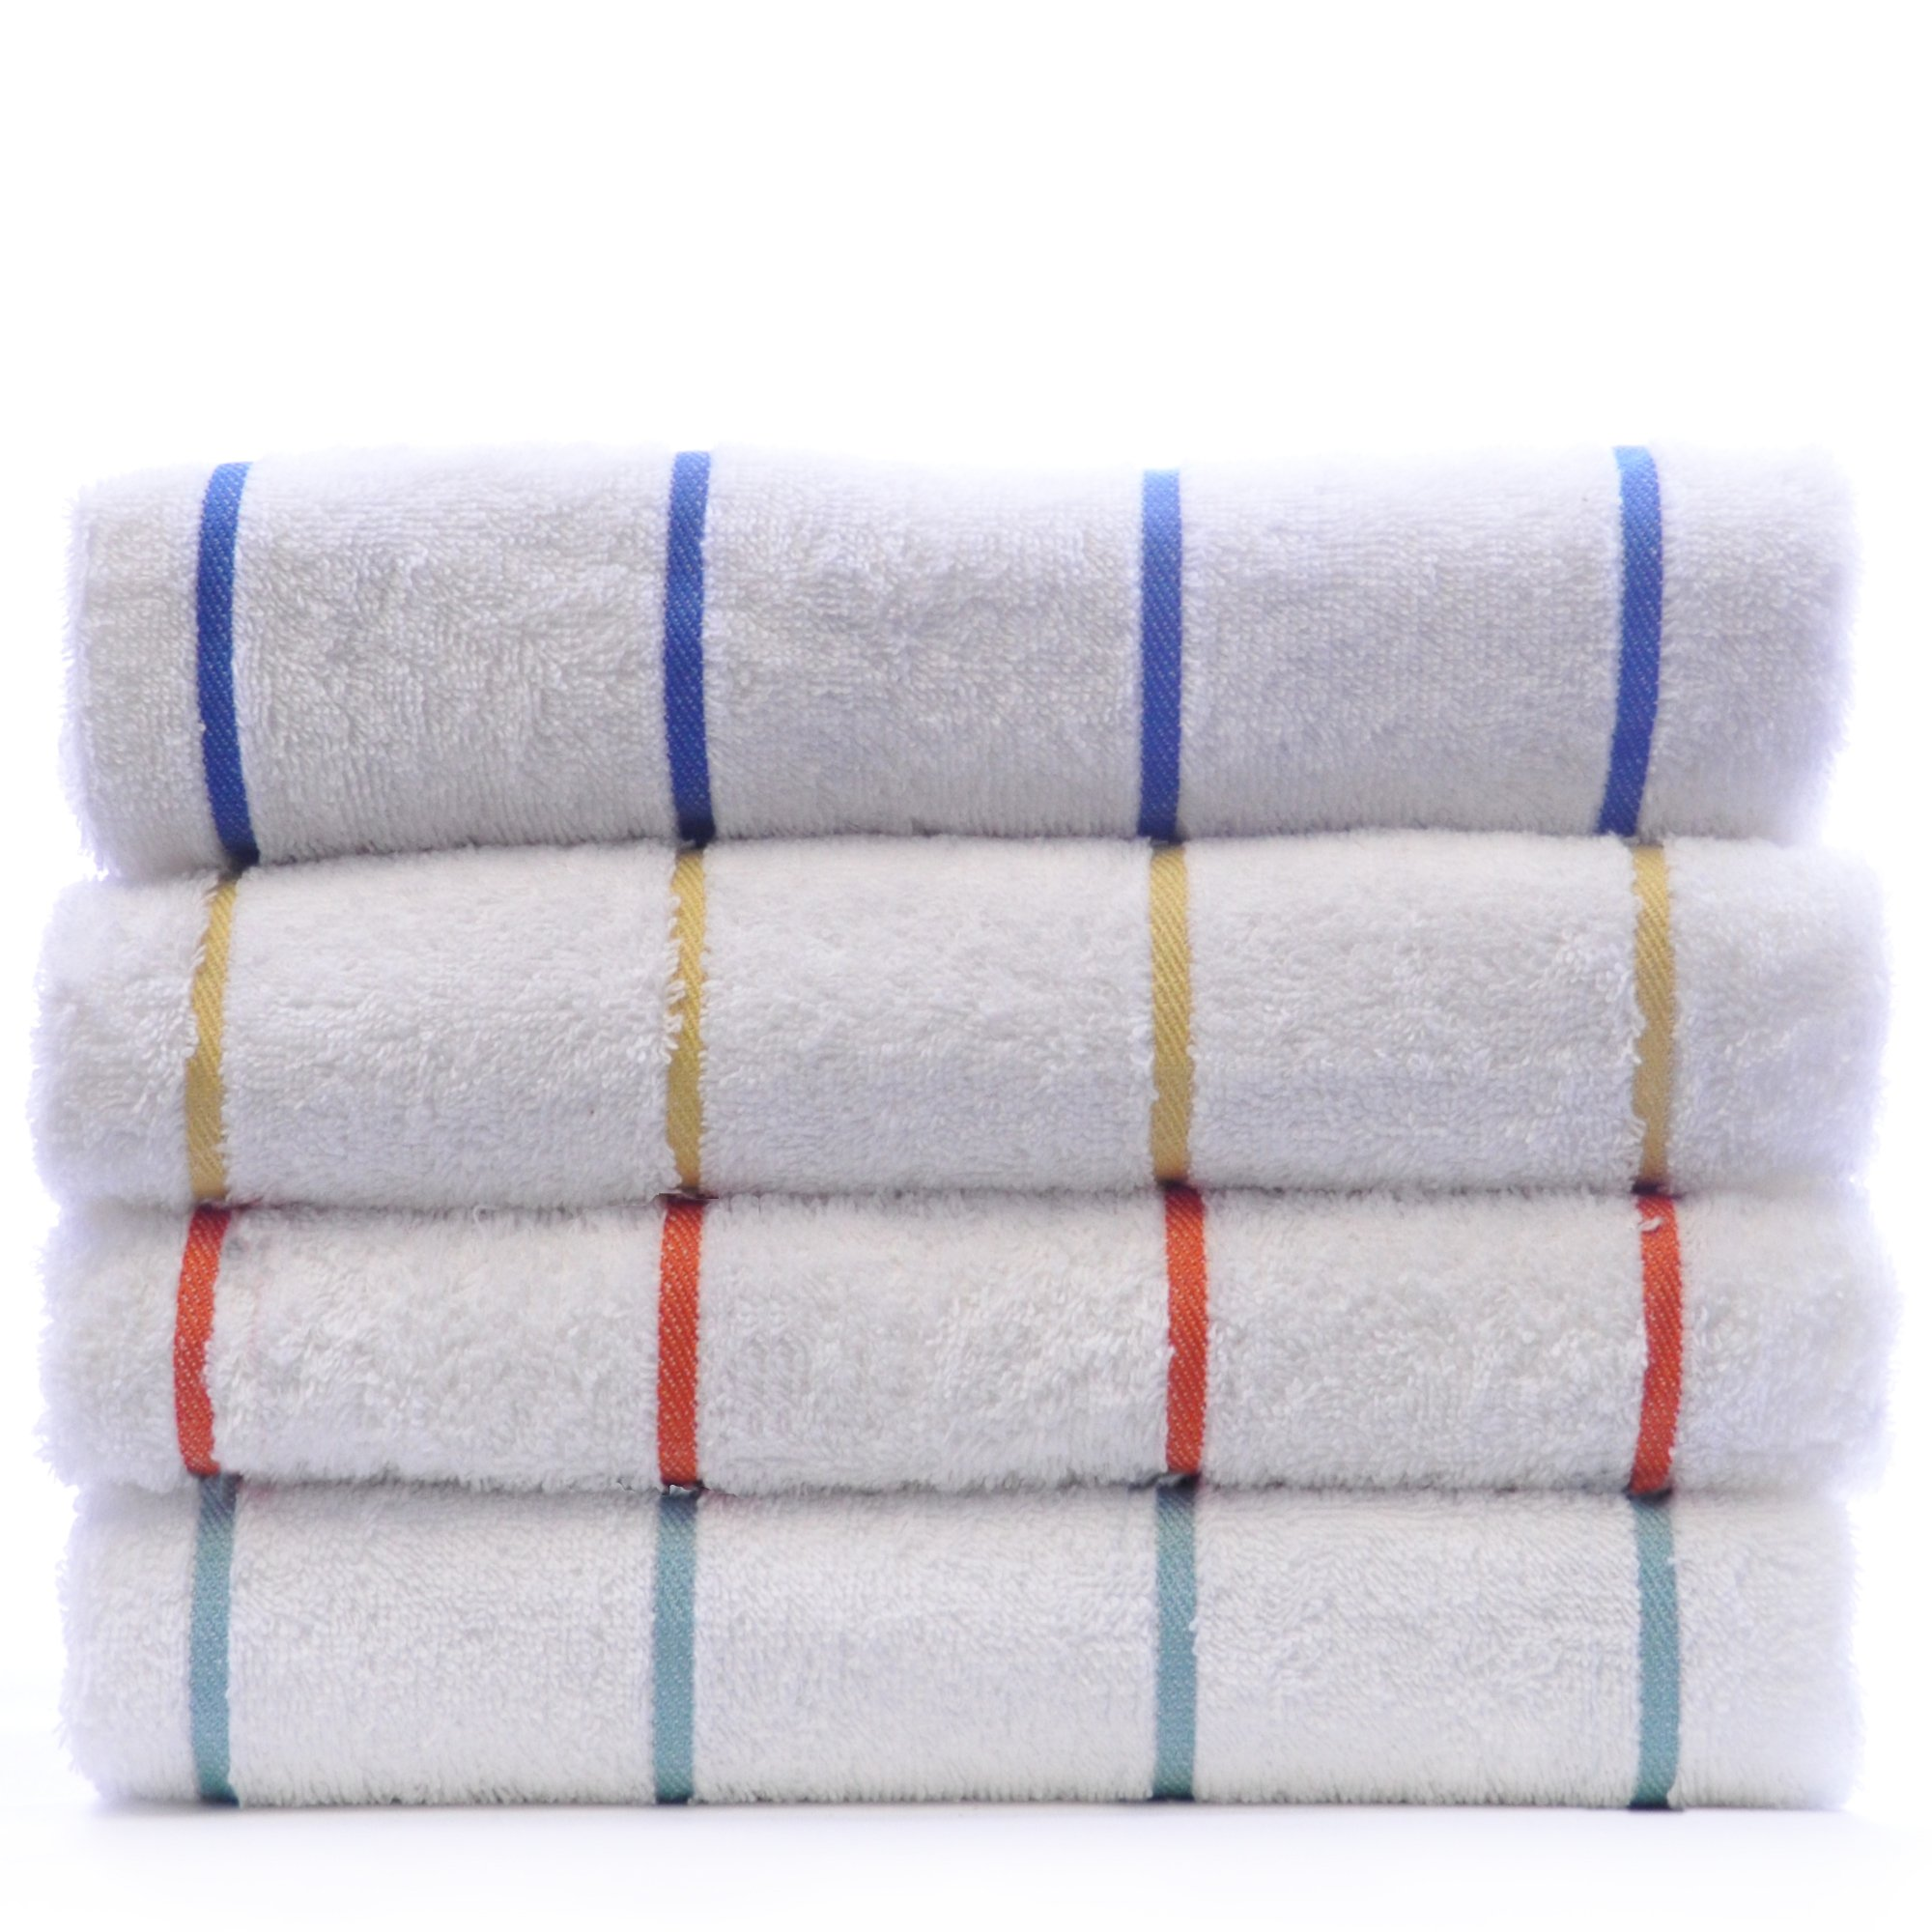 Luxury Hotel Towel Turkish Cotton Extra Large Pool-Beach Towel Set (Set of 4, Variety Pack) by Chakir Turkish Linens